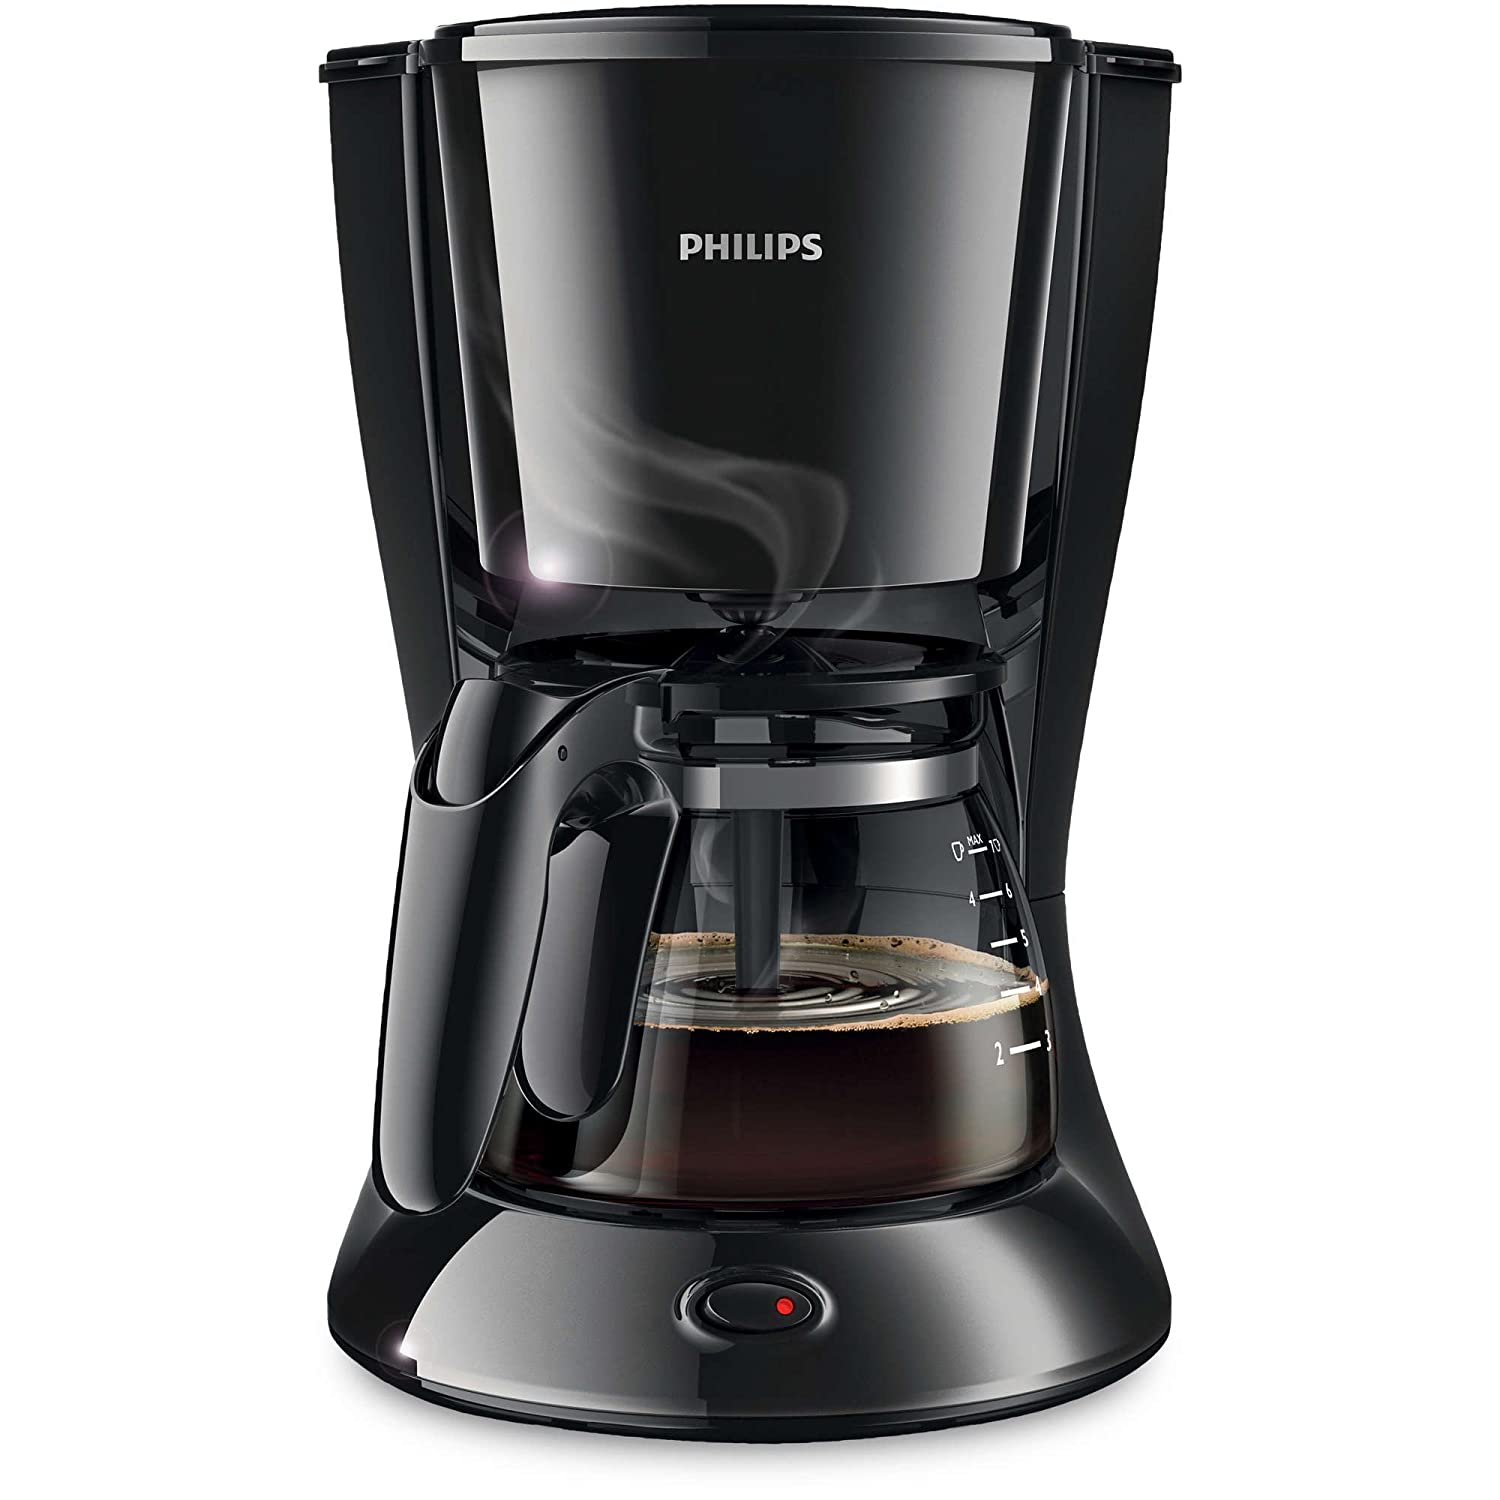 coffee maker coffee machine Philips HD7431/20 760-Watt Coffee Maker (Black)